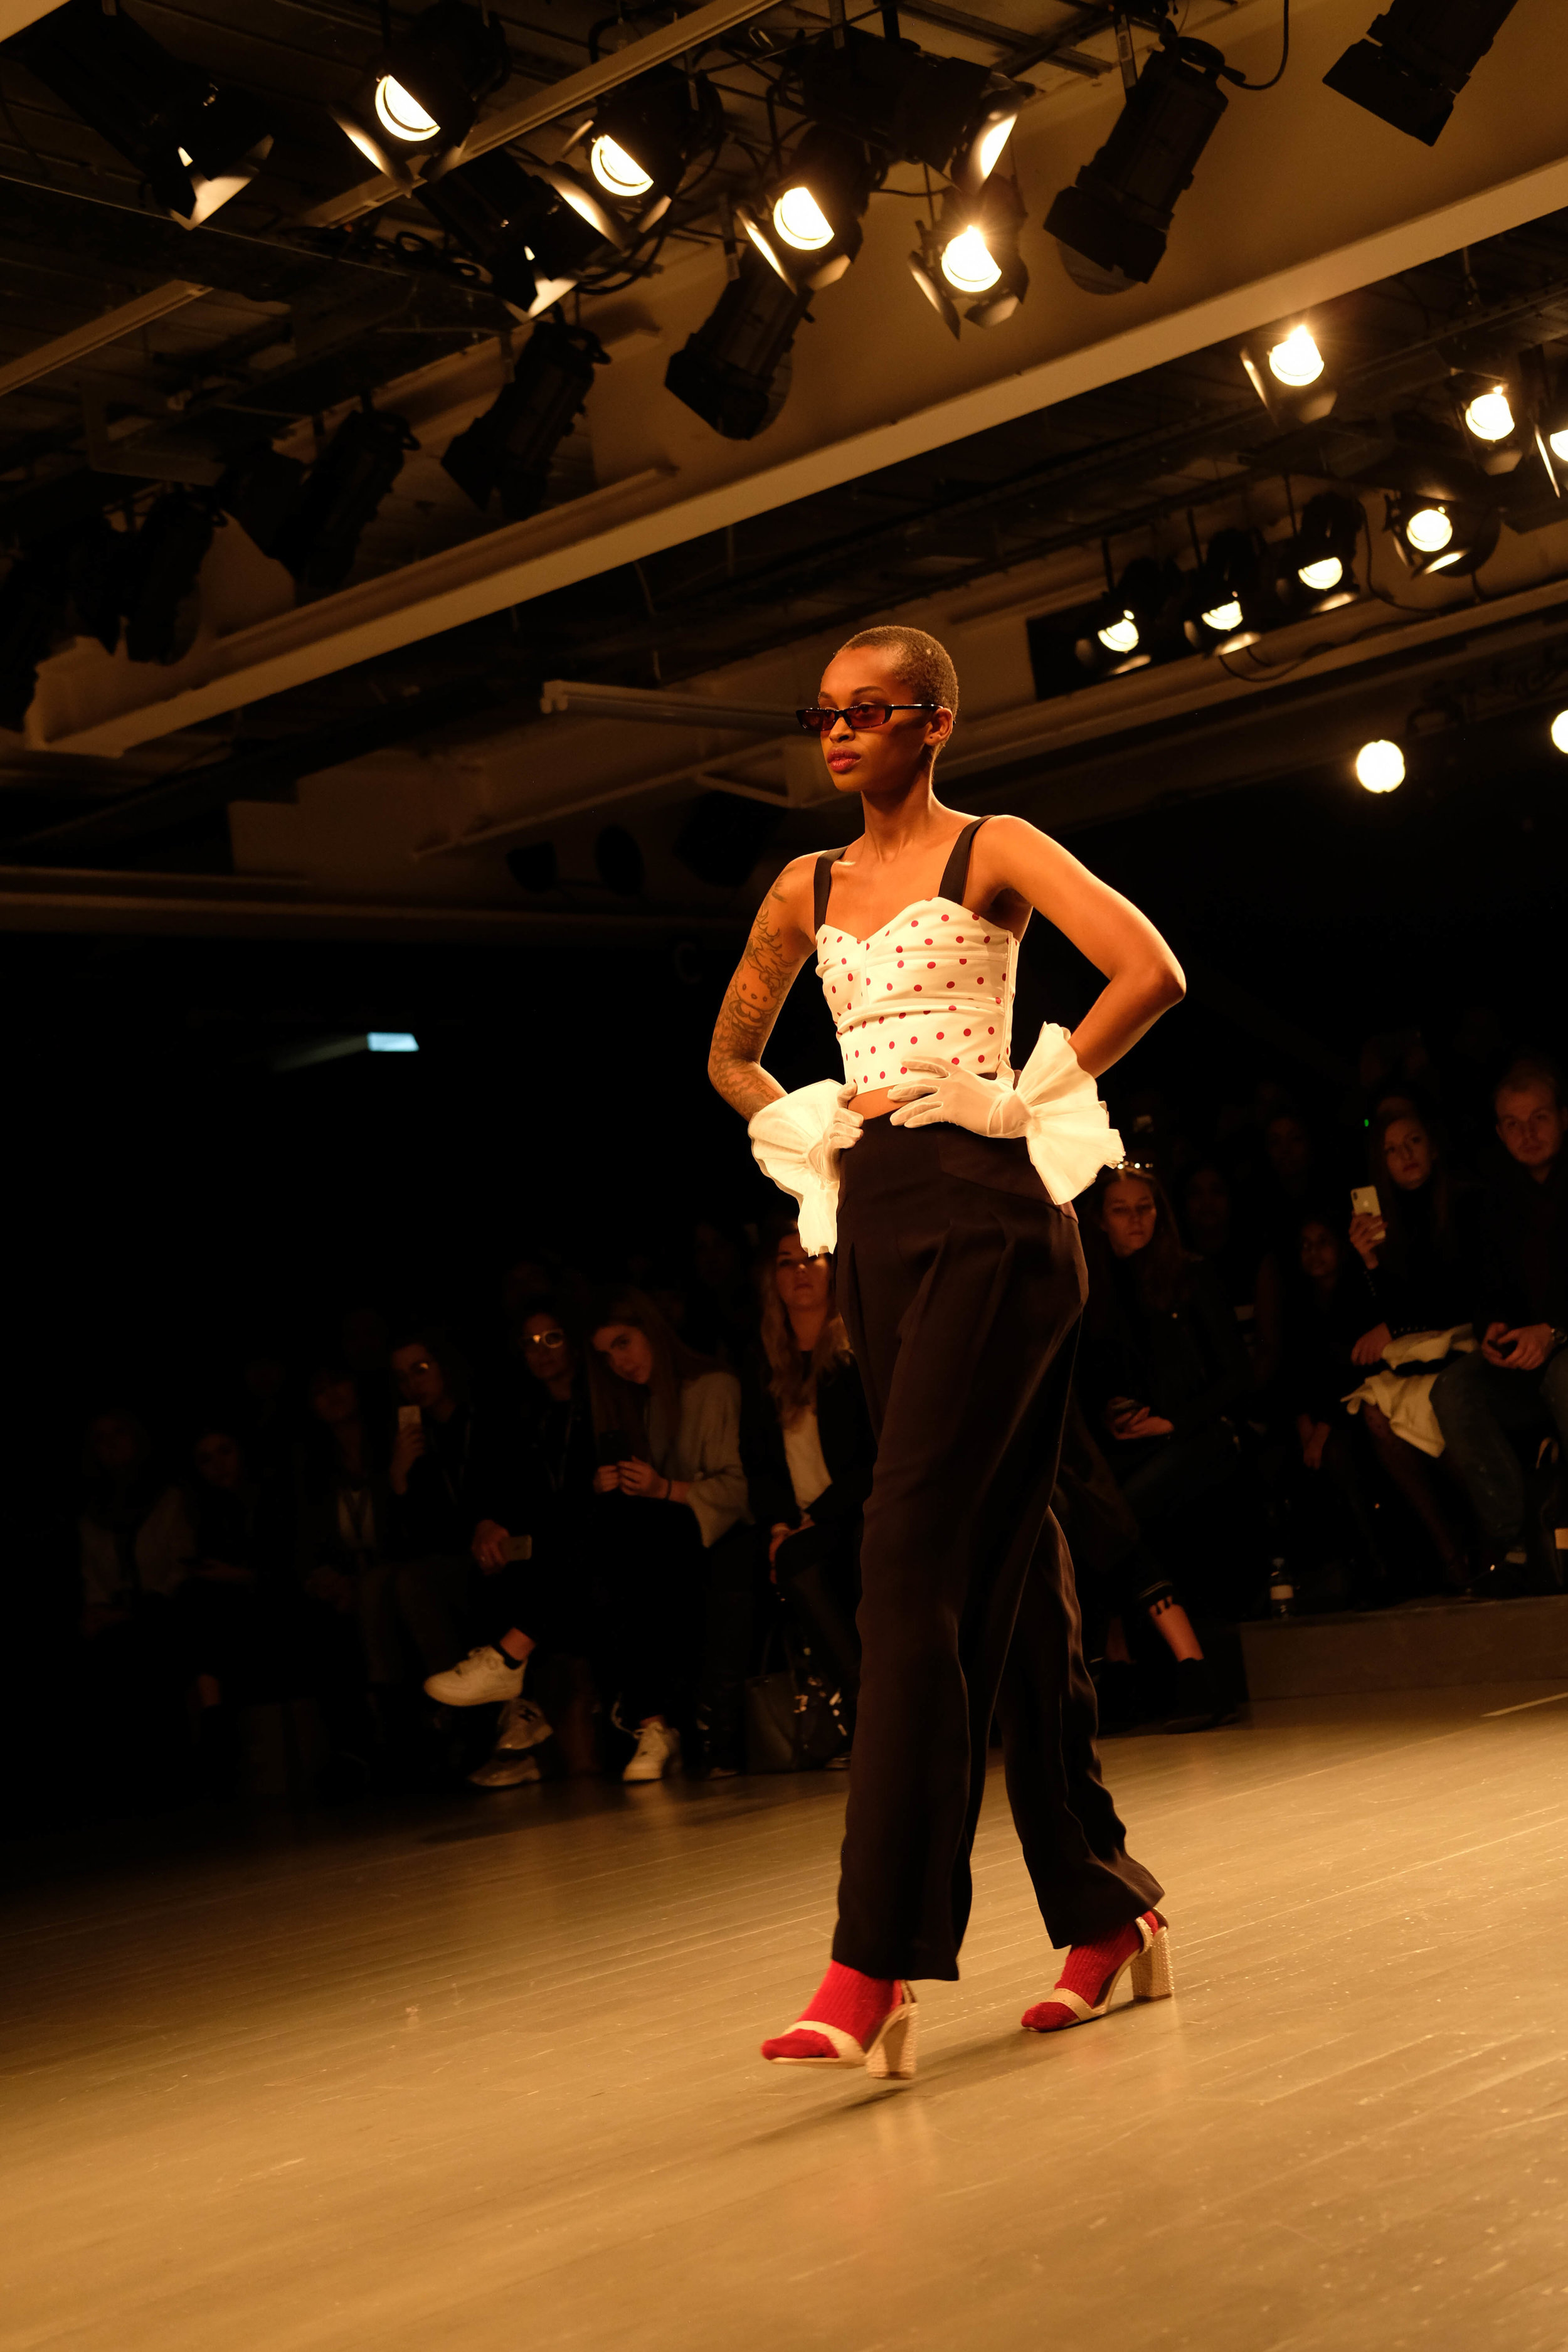 "<p style=""font-family:brandon-grotesque;font-weight:500; font-size:11px; text-center:left; color:light grey;letter-spacing: 1px"">FEBRUARY 24, 2018 • LFW '18 • �London, UK 🇬🇧</p>"